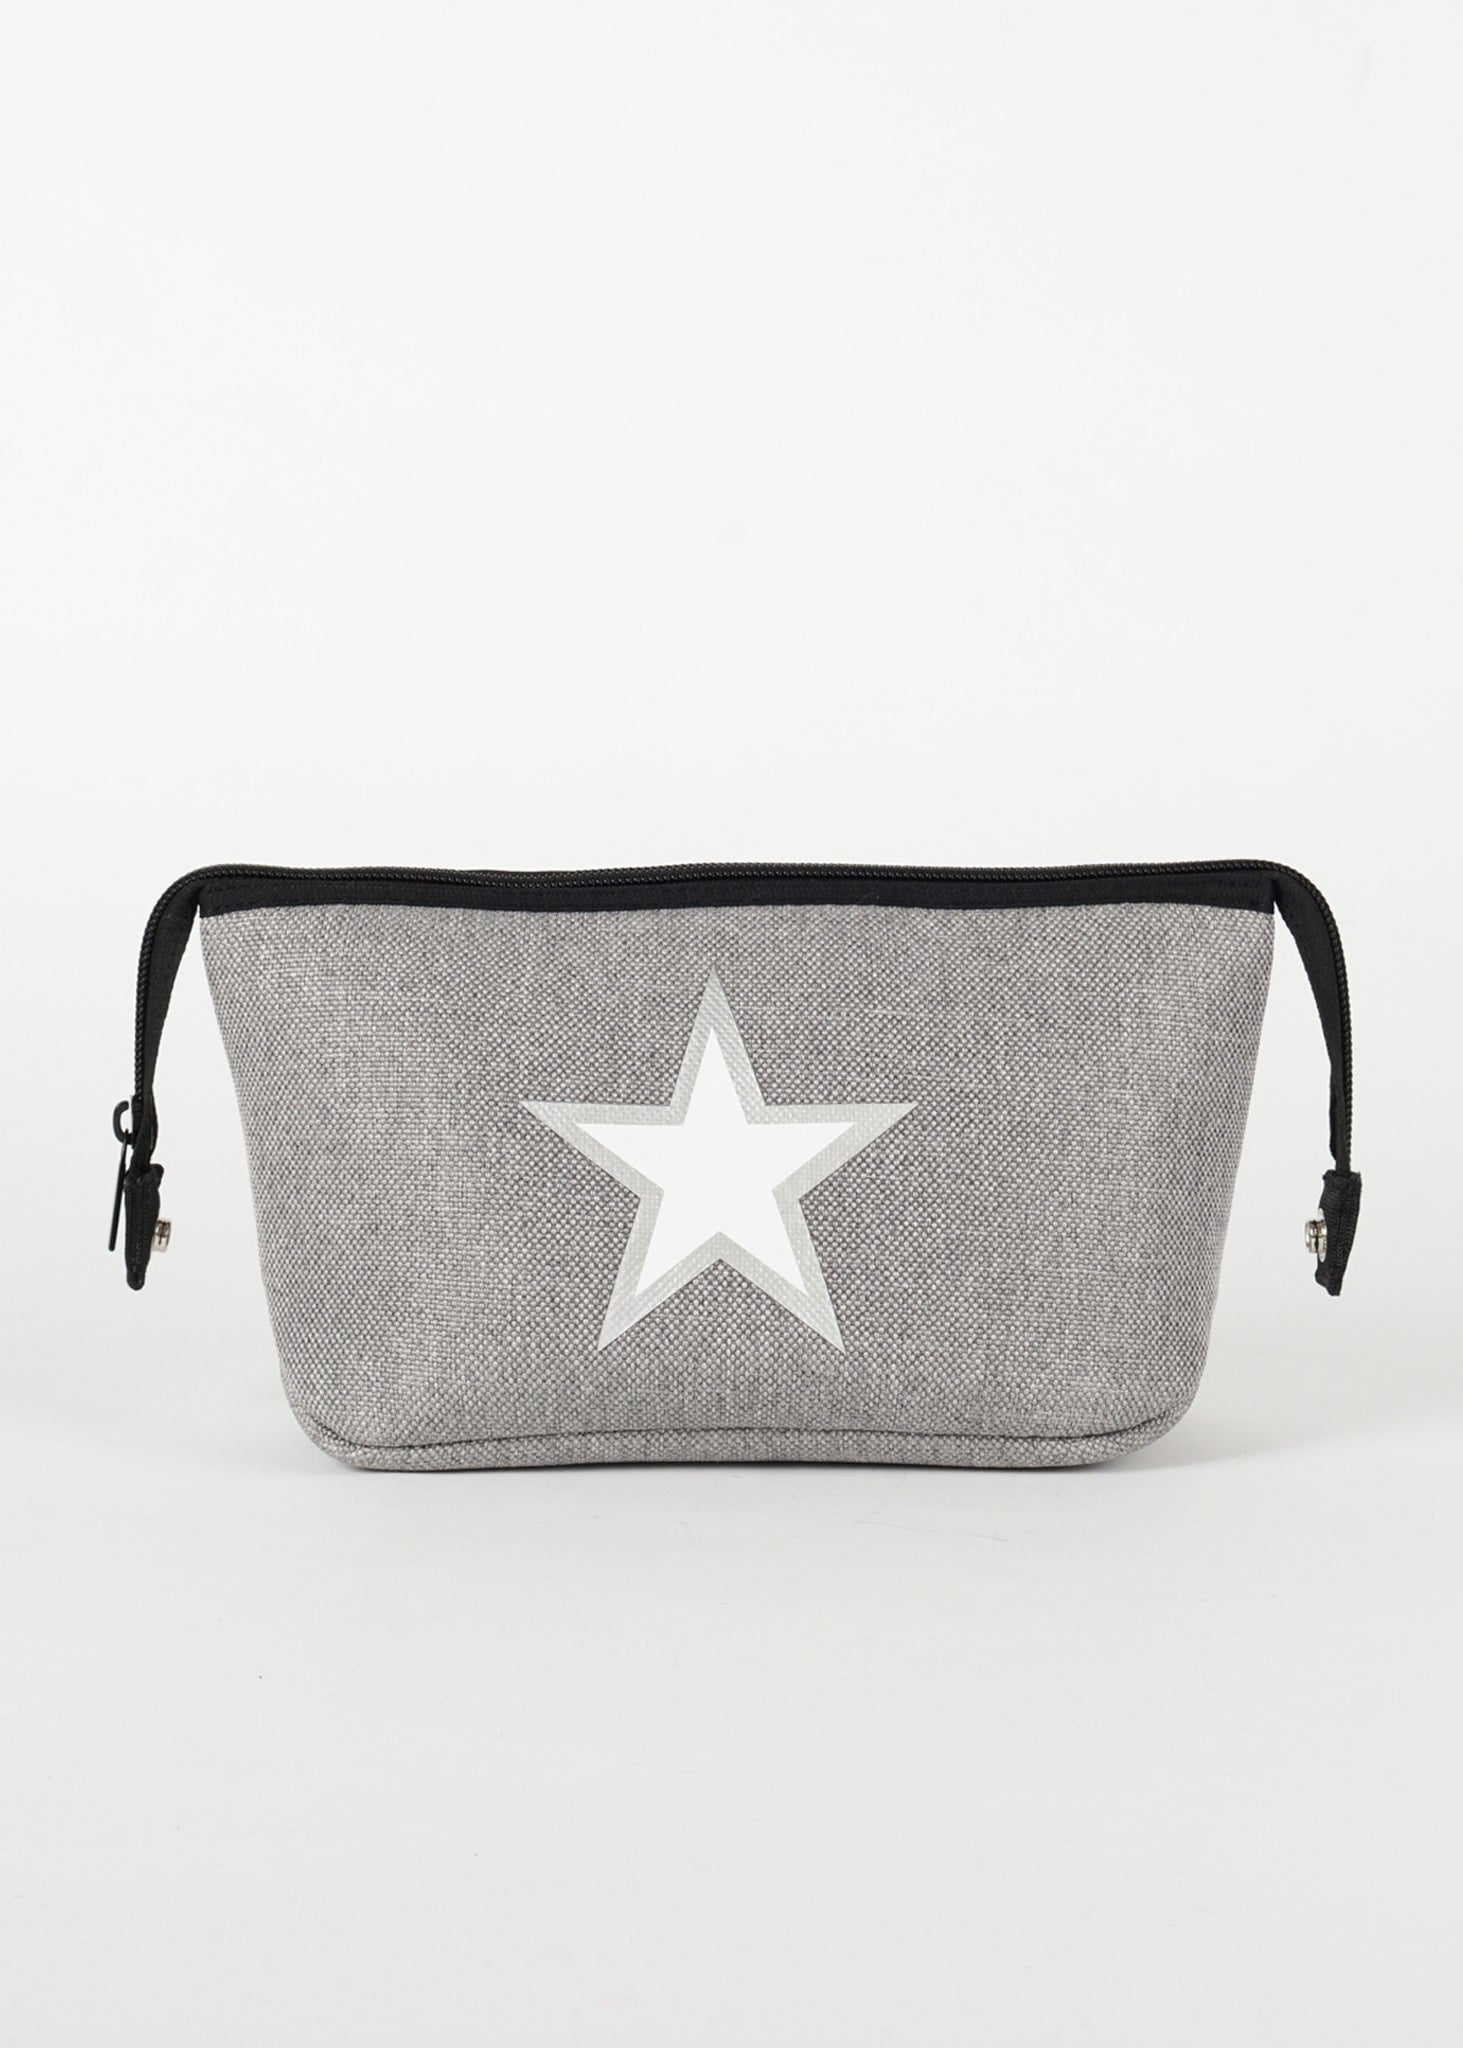 Erin Gray Linen/Silver Outline Star/Black Denim Back